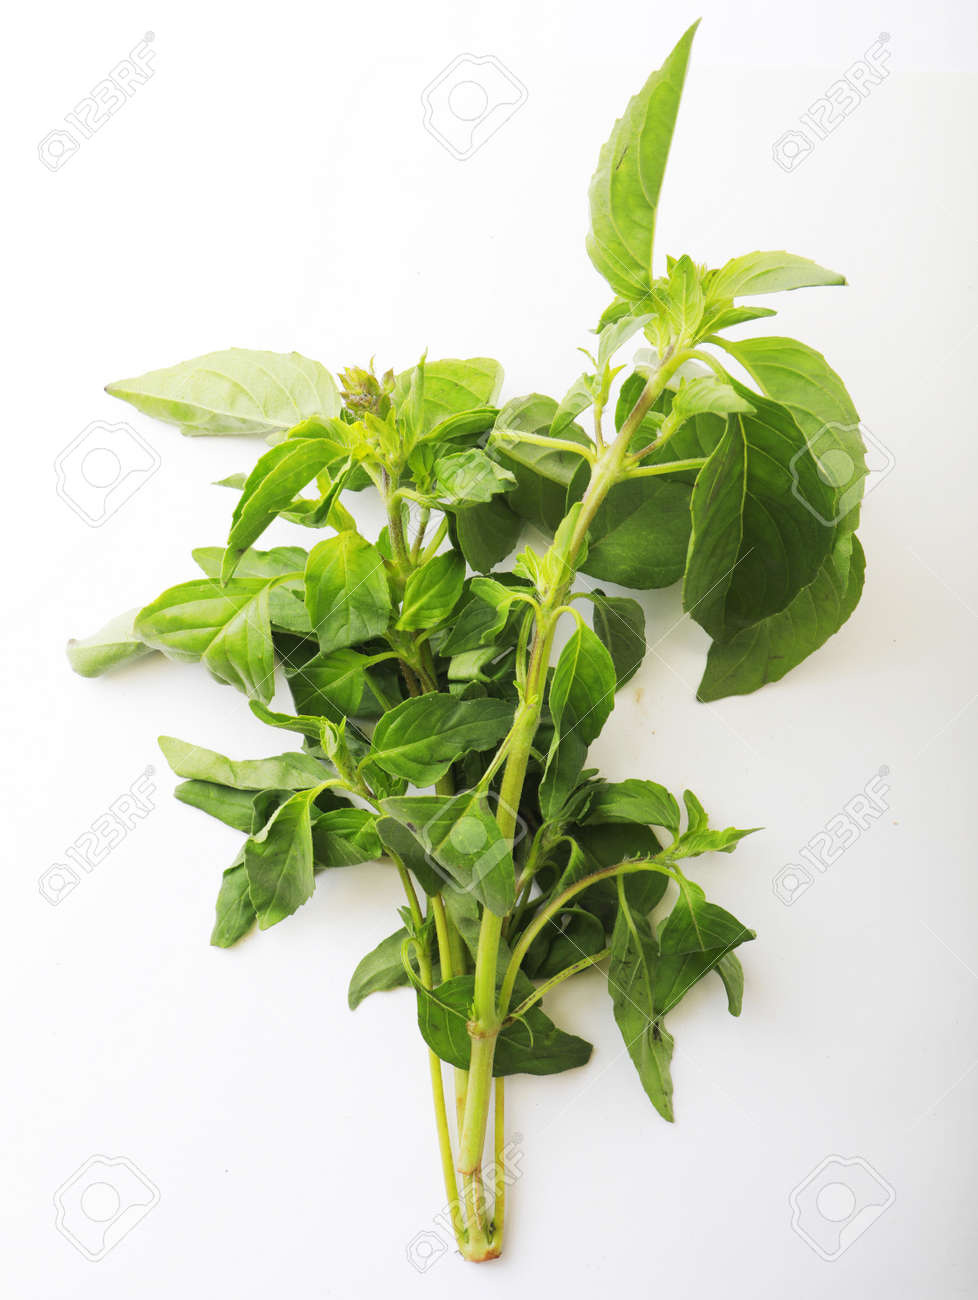 Fresh mint bunch on white background. Top view. Close-up. - 166879470